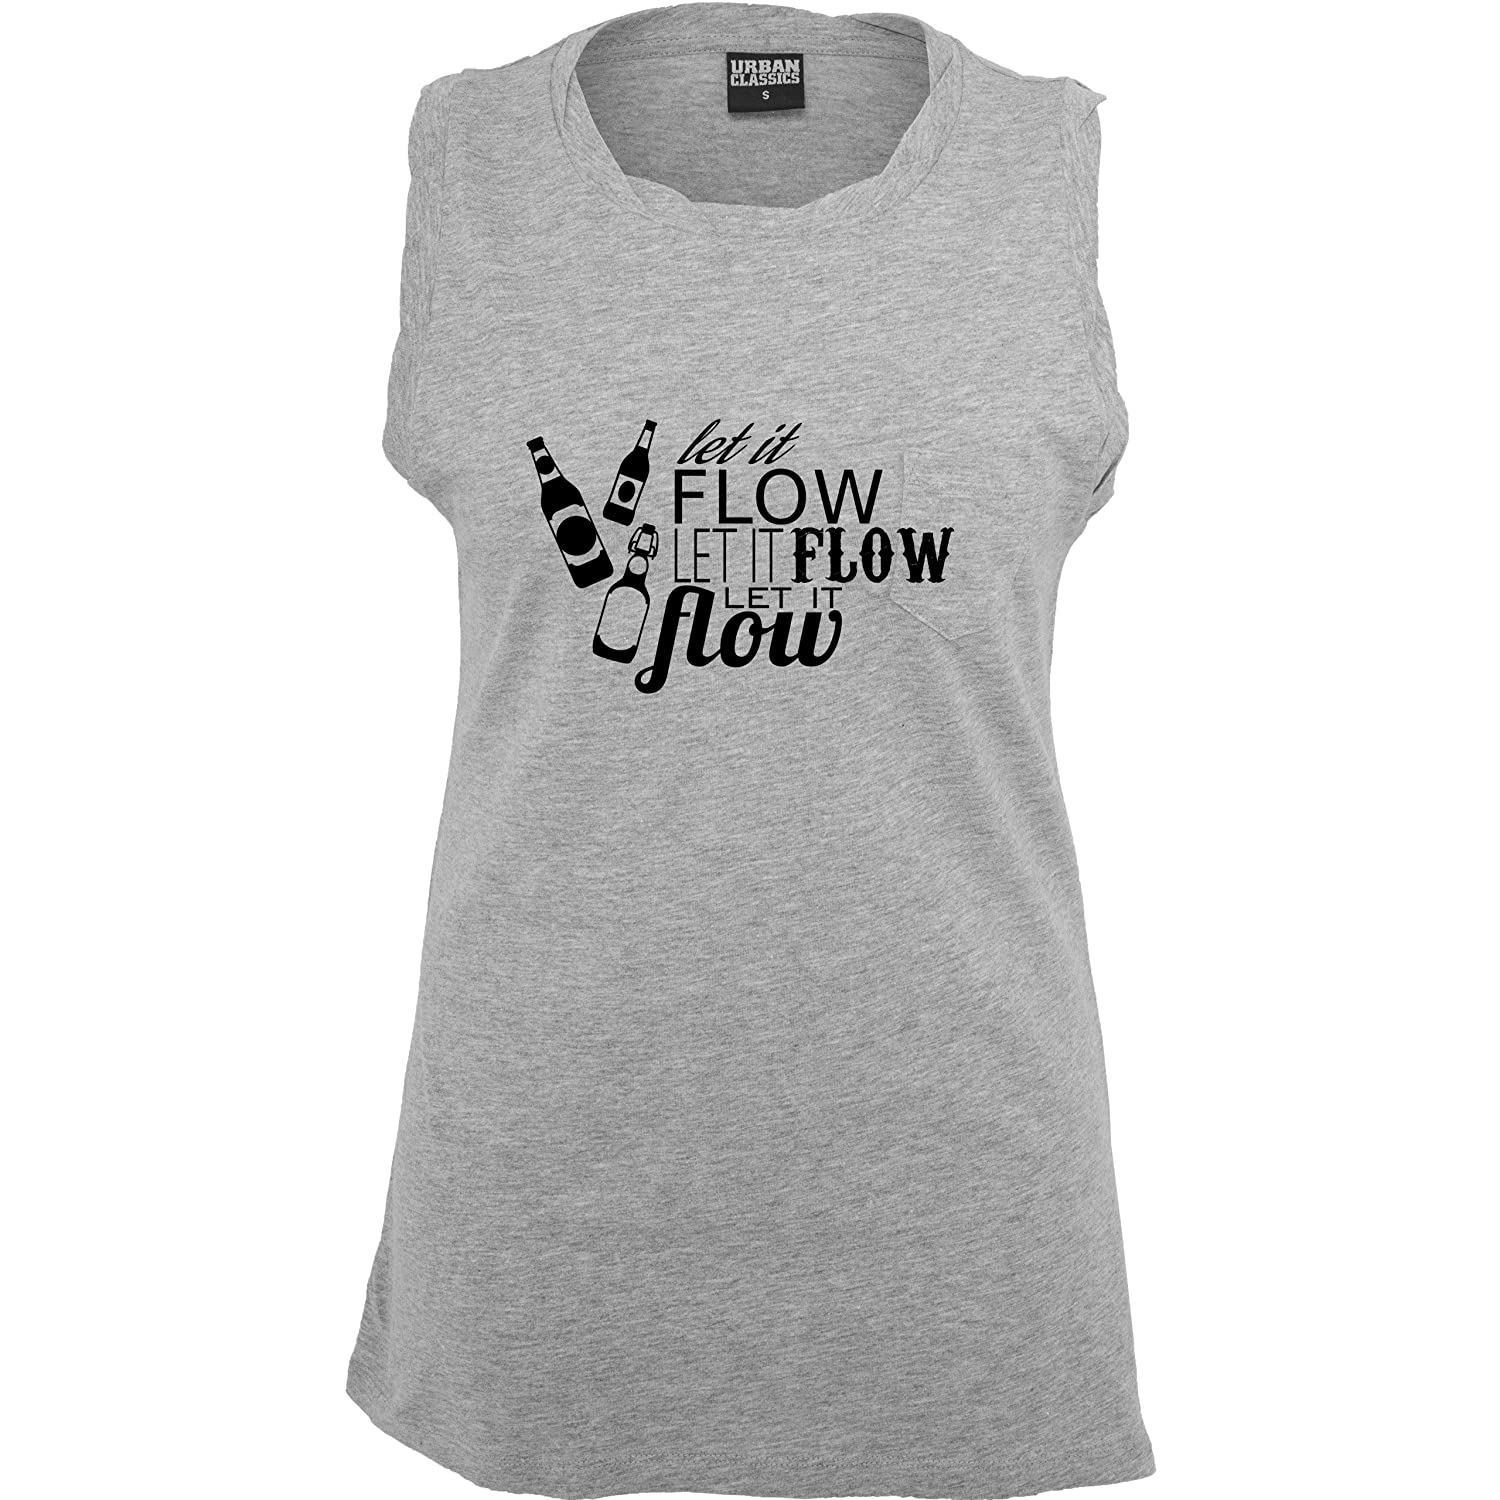 Après Ski - Let it flow Bier - ärmelloses Damen T-Shirt mit Brusttasche